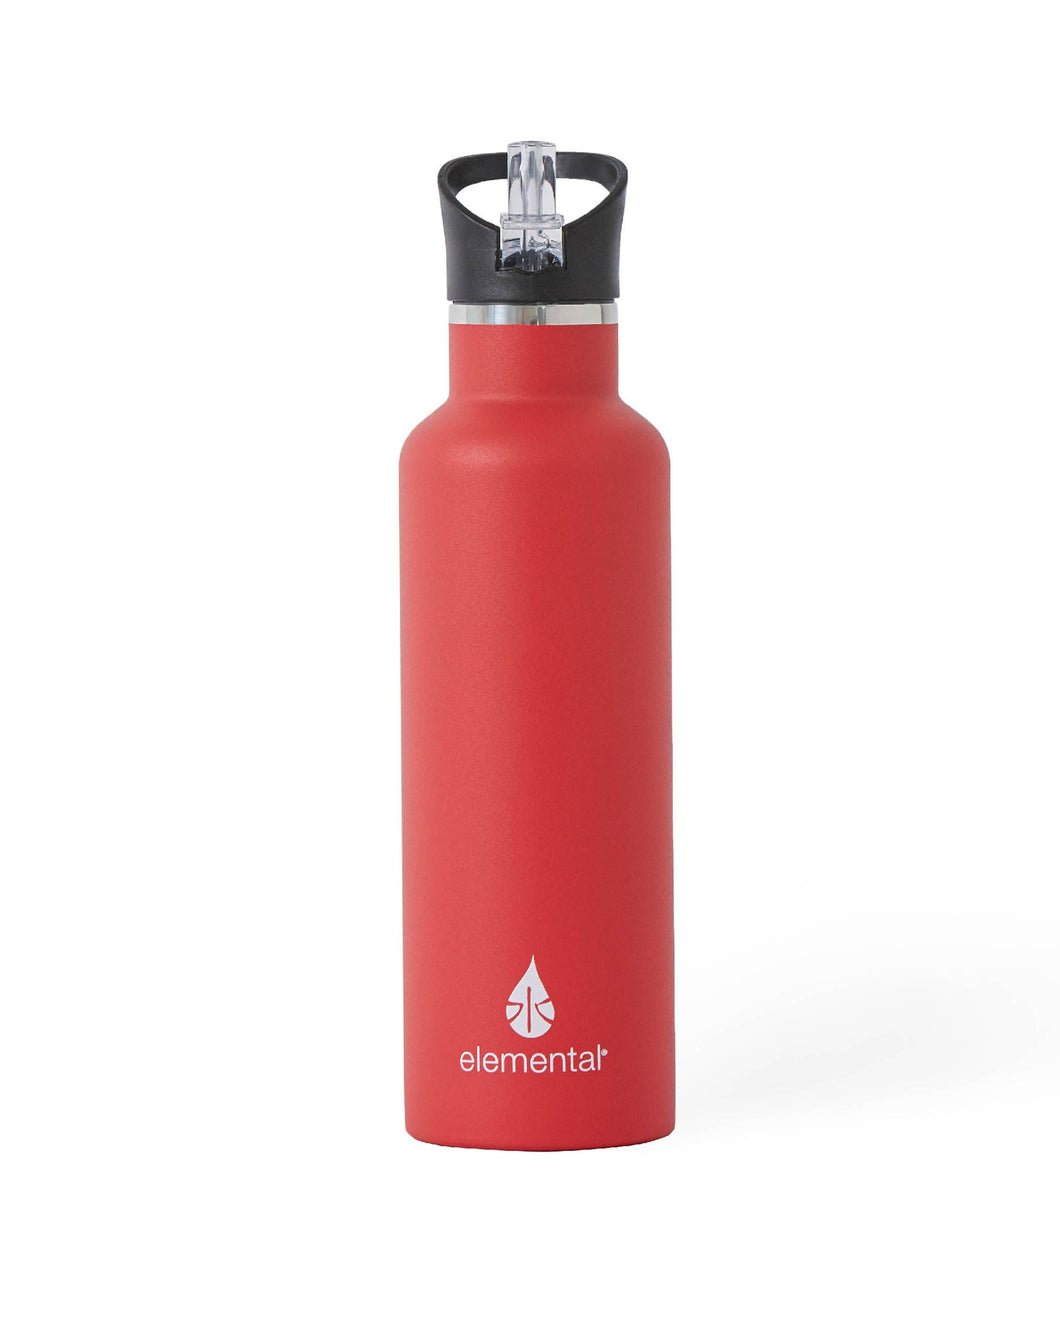 25 oz. Elemental Stainless Steel Sport Water Bottle - Red with Black Sport Top